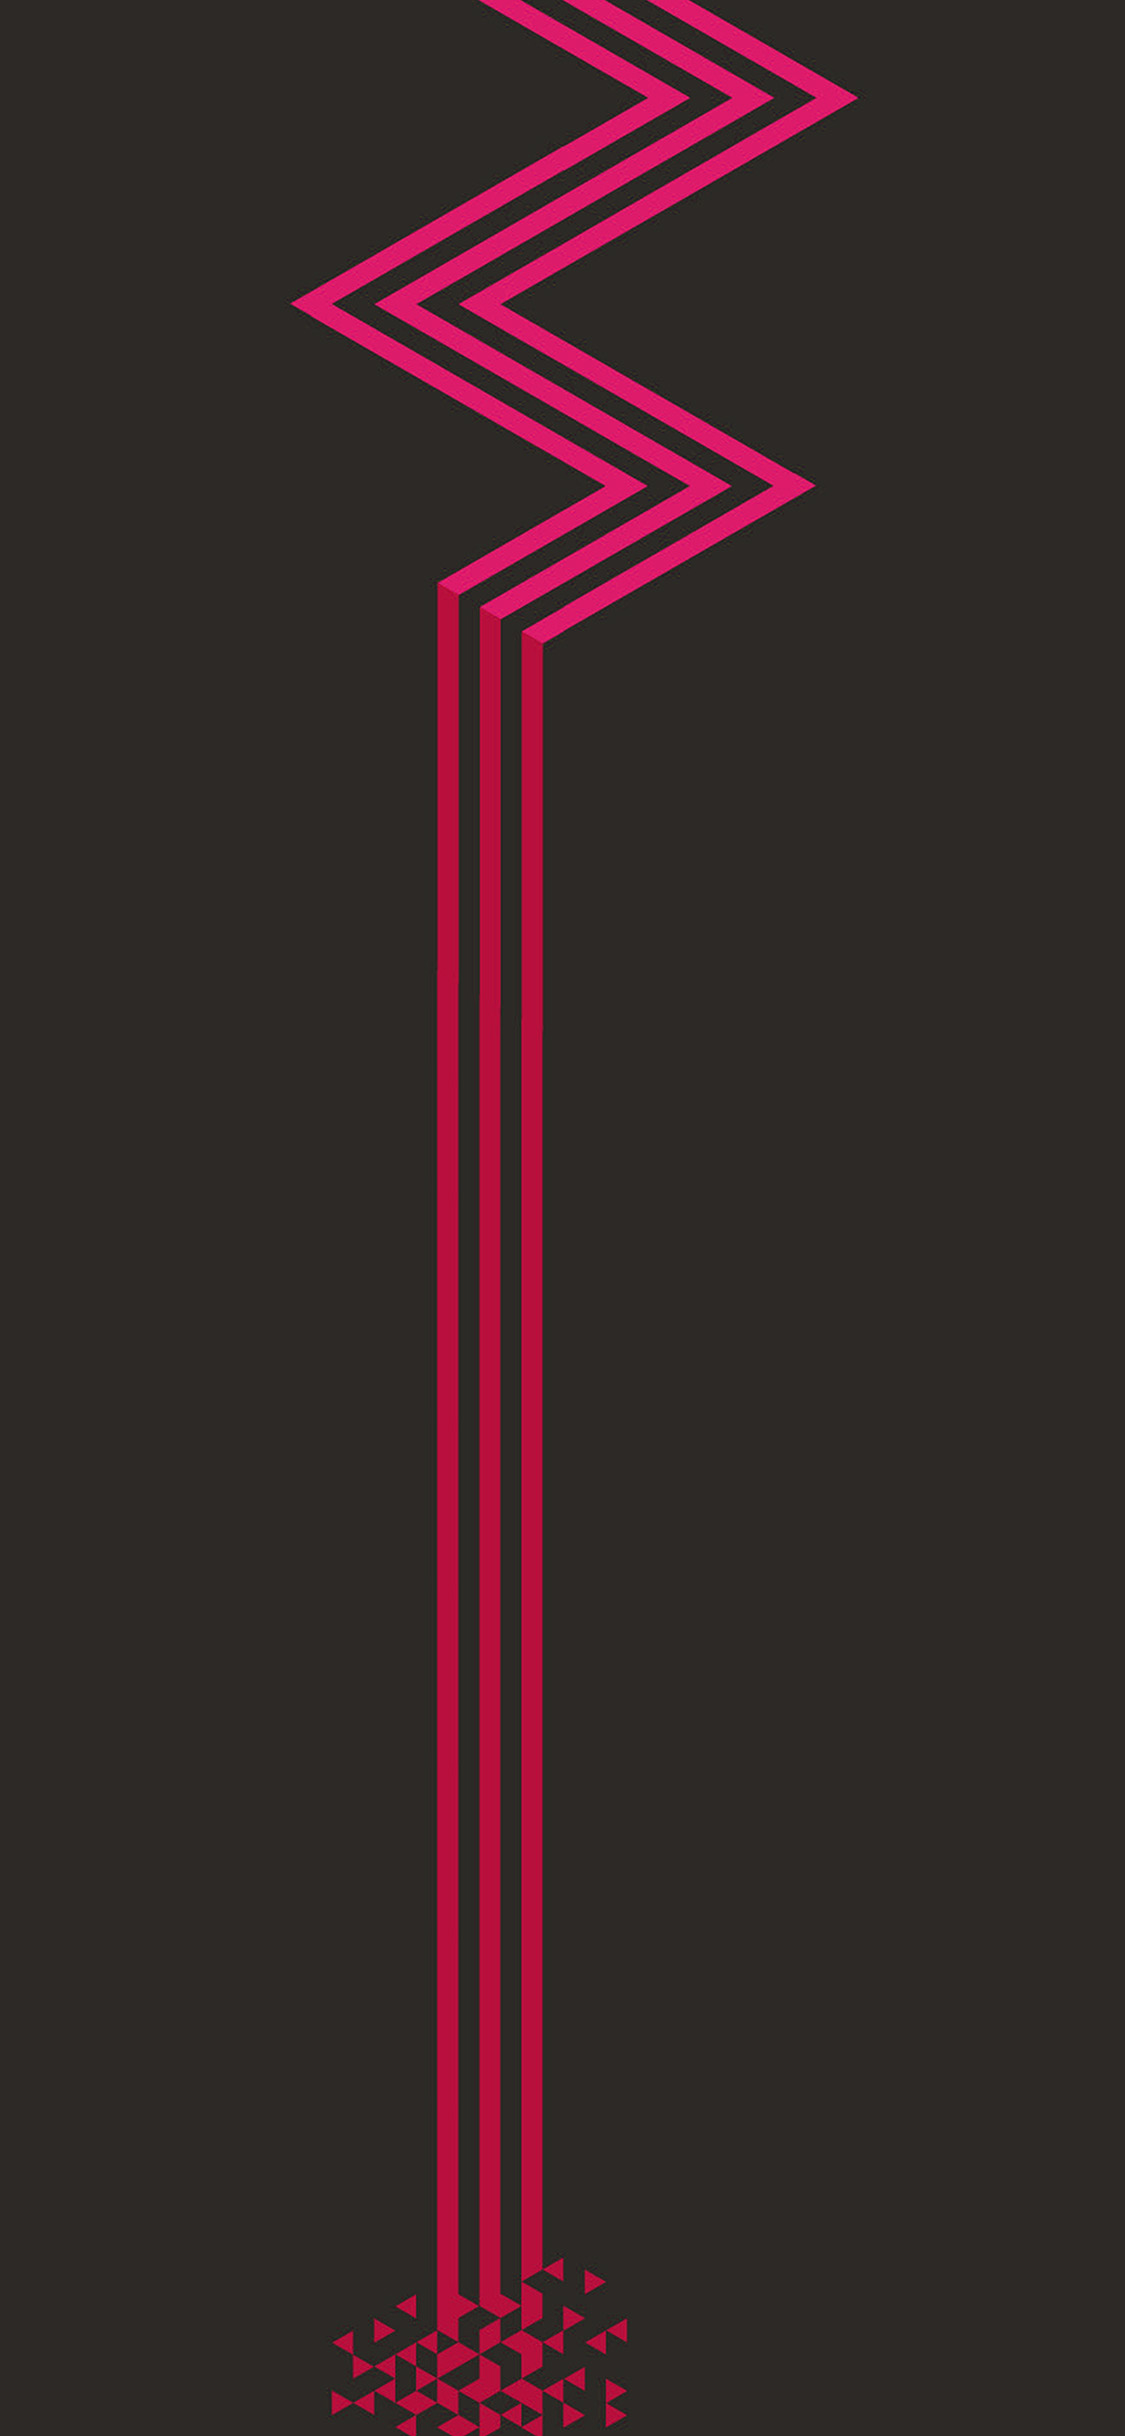 Iphone11papers Com Iphone11 Wallpaper Vz26 Minimal Red Dark Line Abstract Digital Pattern Background